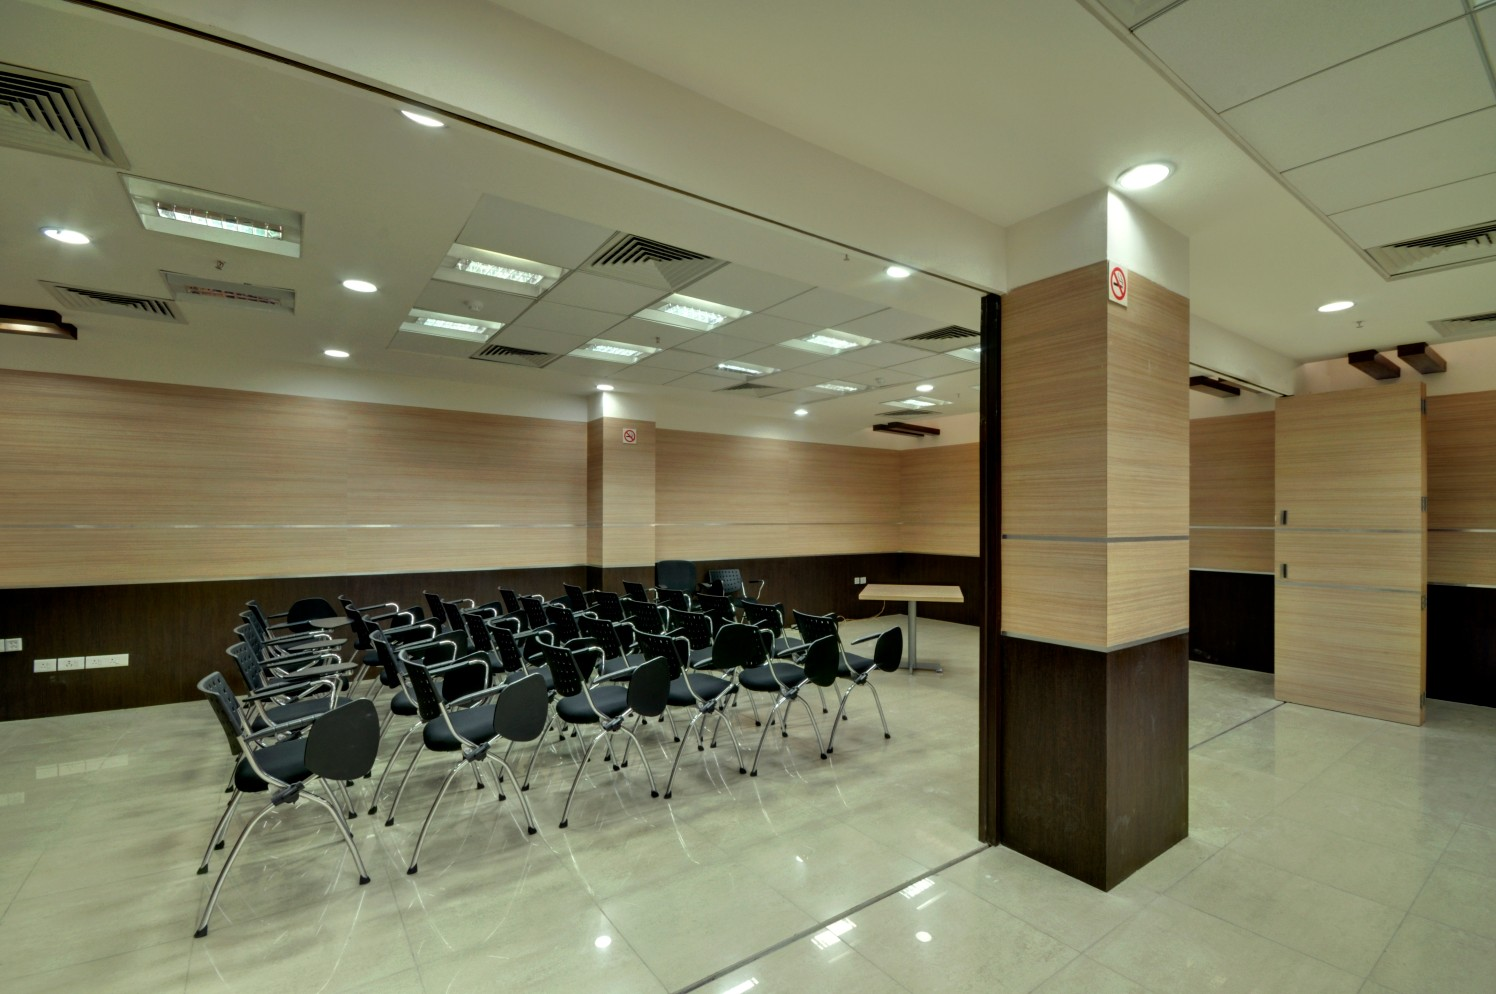 Formal Conference Hall by Vijay Kapur Designs Modern | Interior Design Photos & Ideas